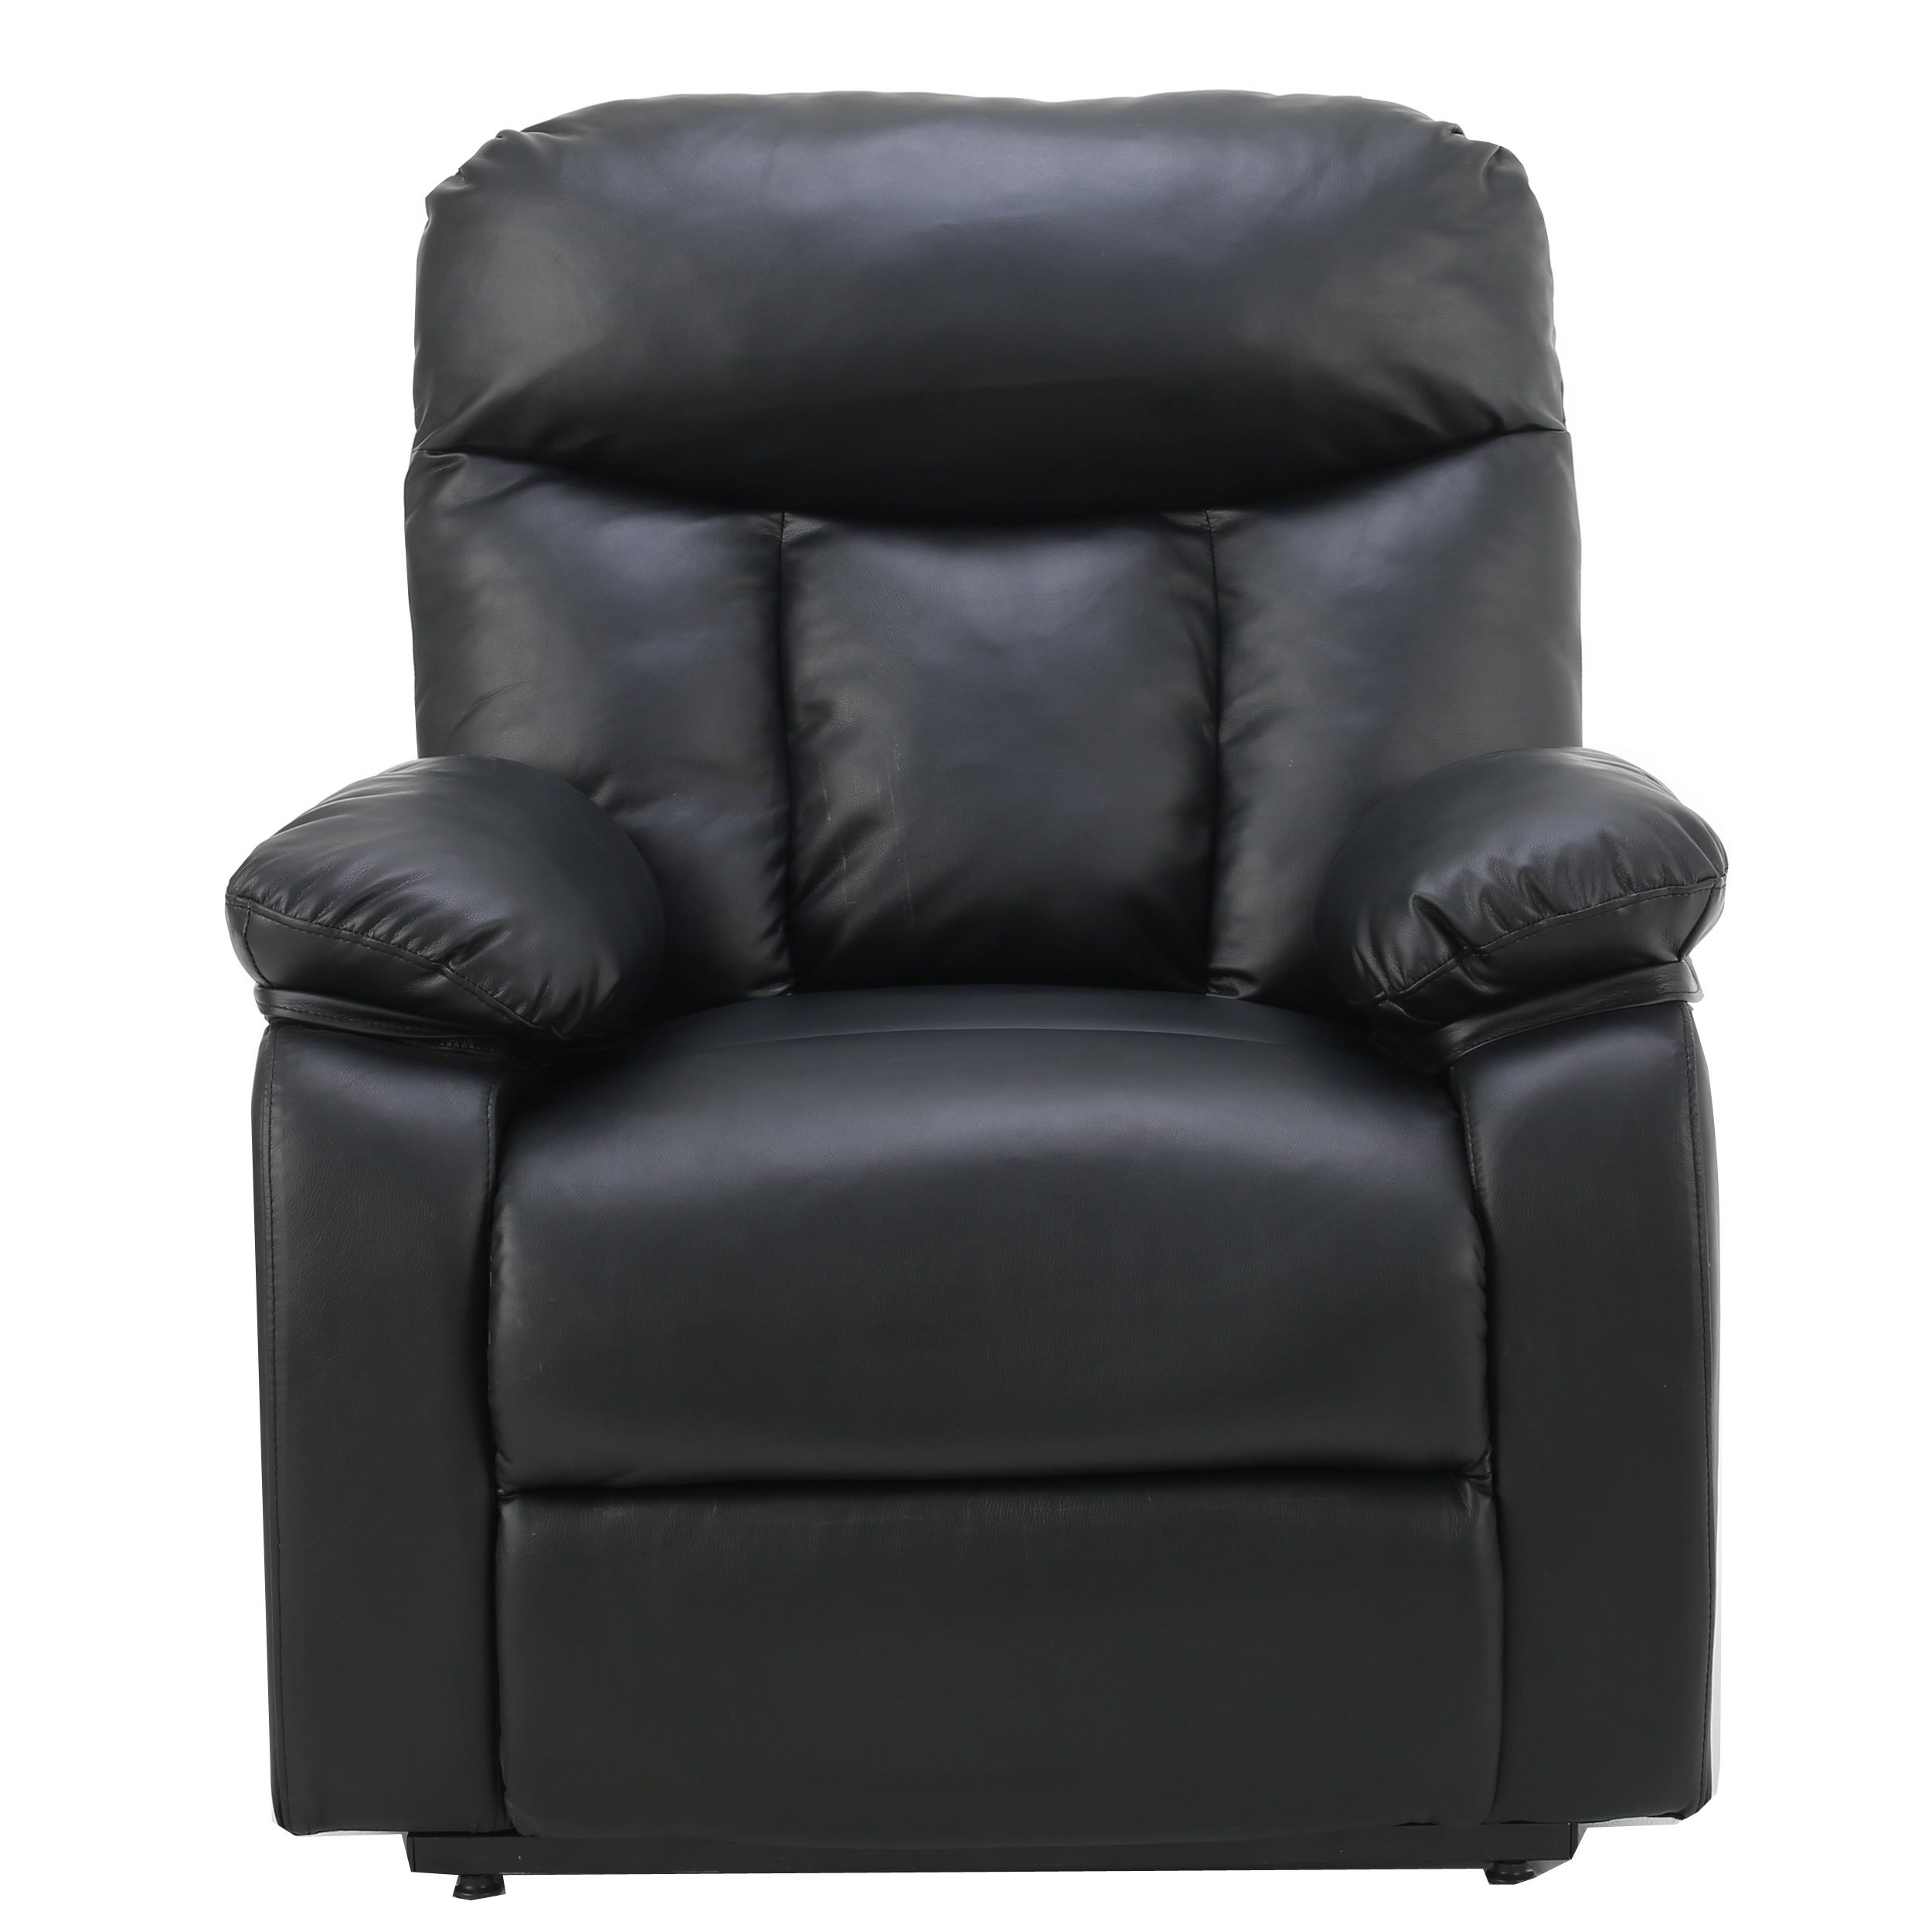 Quade Faux Leather Recliner Lift Club Chair by Christopher Knight